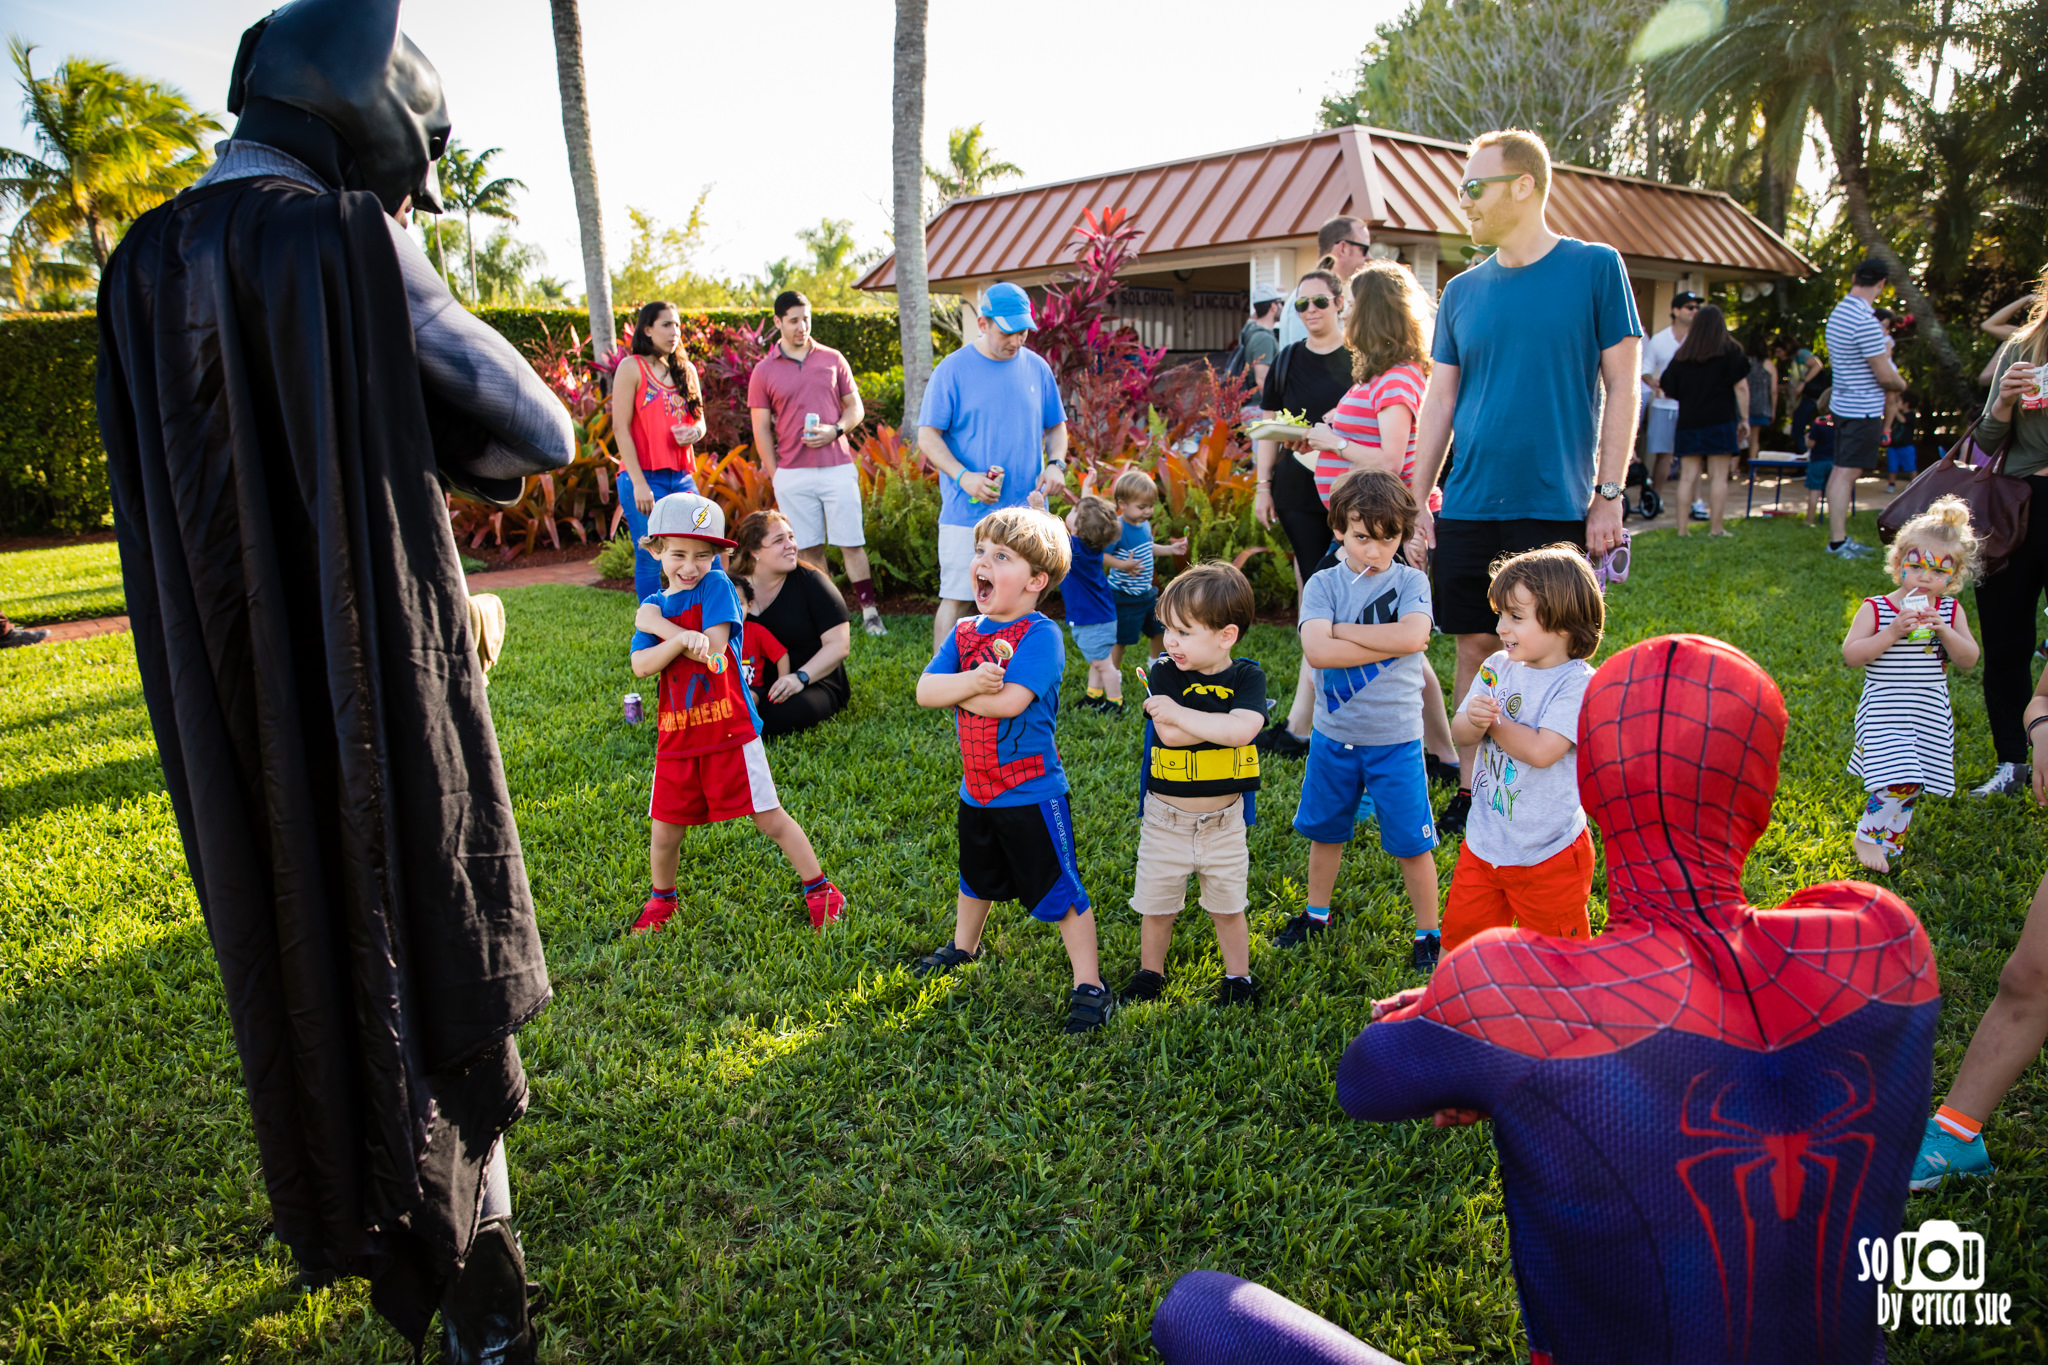 so-you-by-erica-sue-miami-birthday-party-event-photographer-8569.jpg